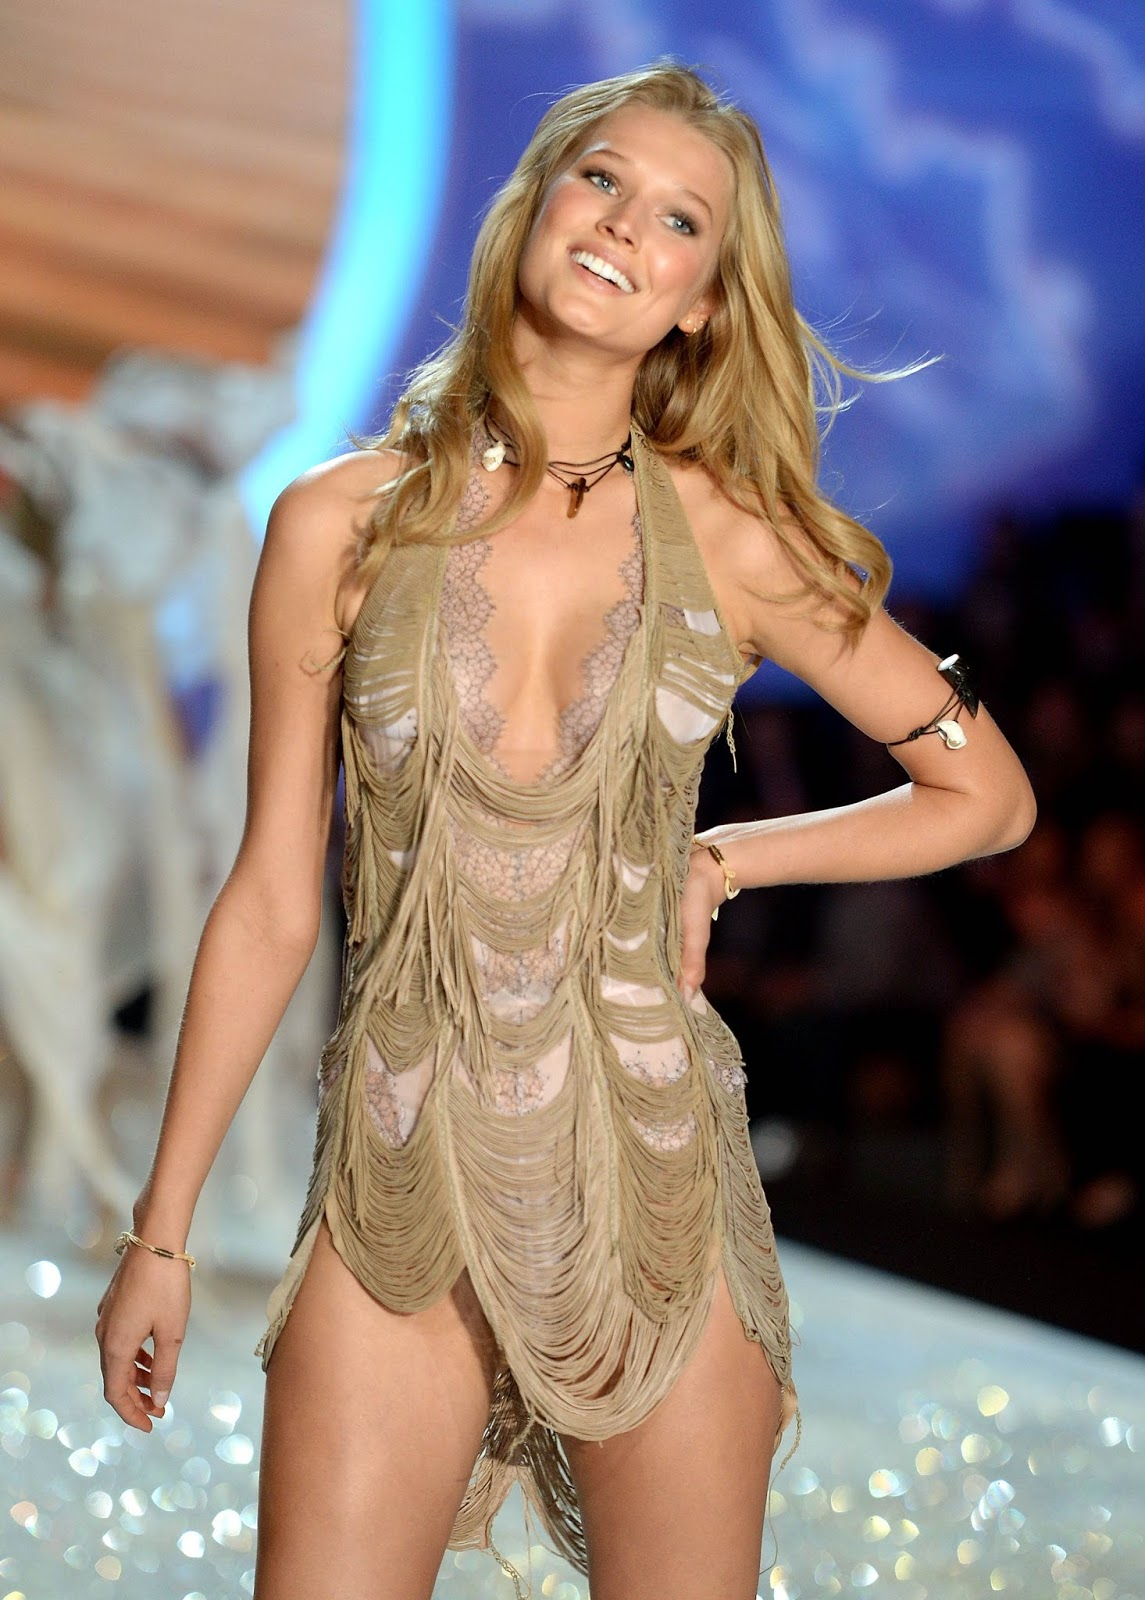 Fashion Show Coloring Pages For Adults: 2013 Victoria's Secret Fashion Show Runway Pictures